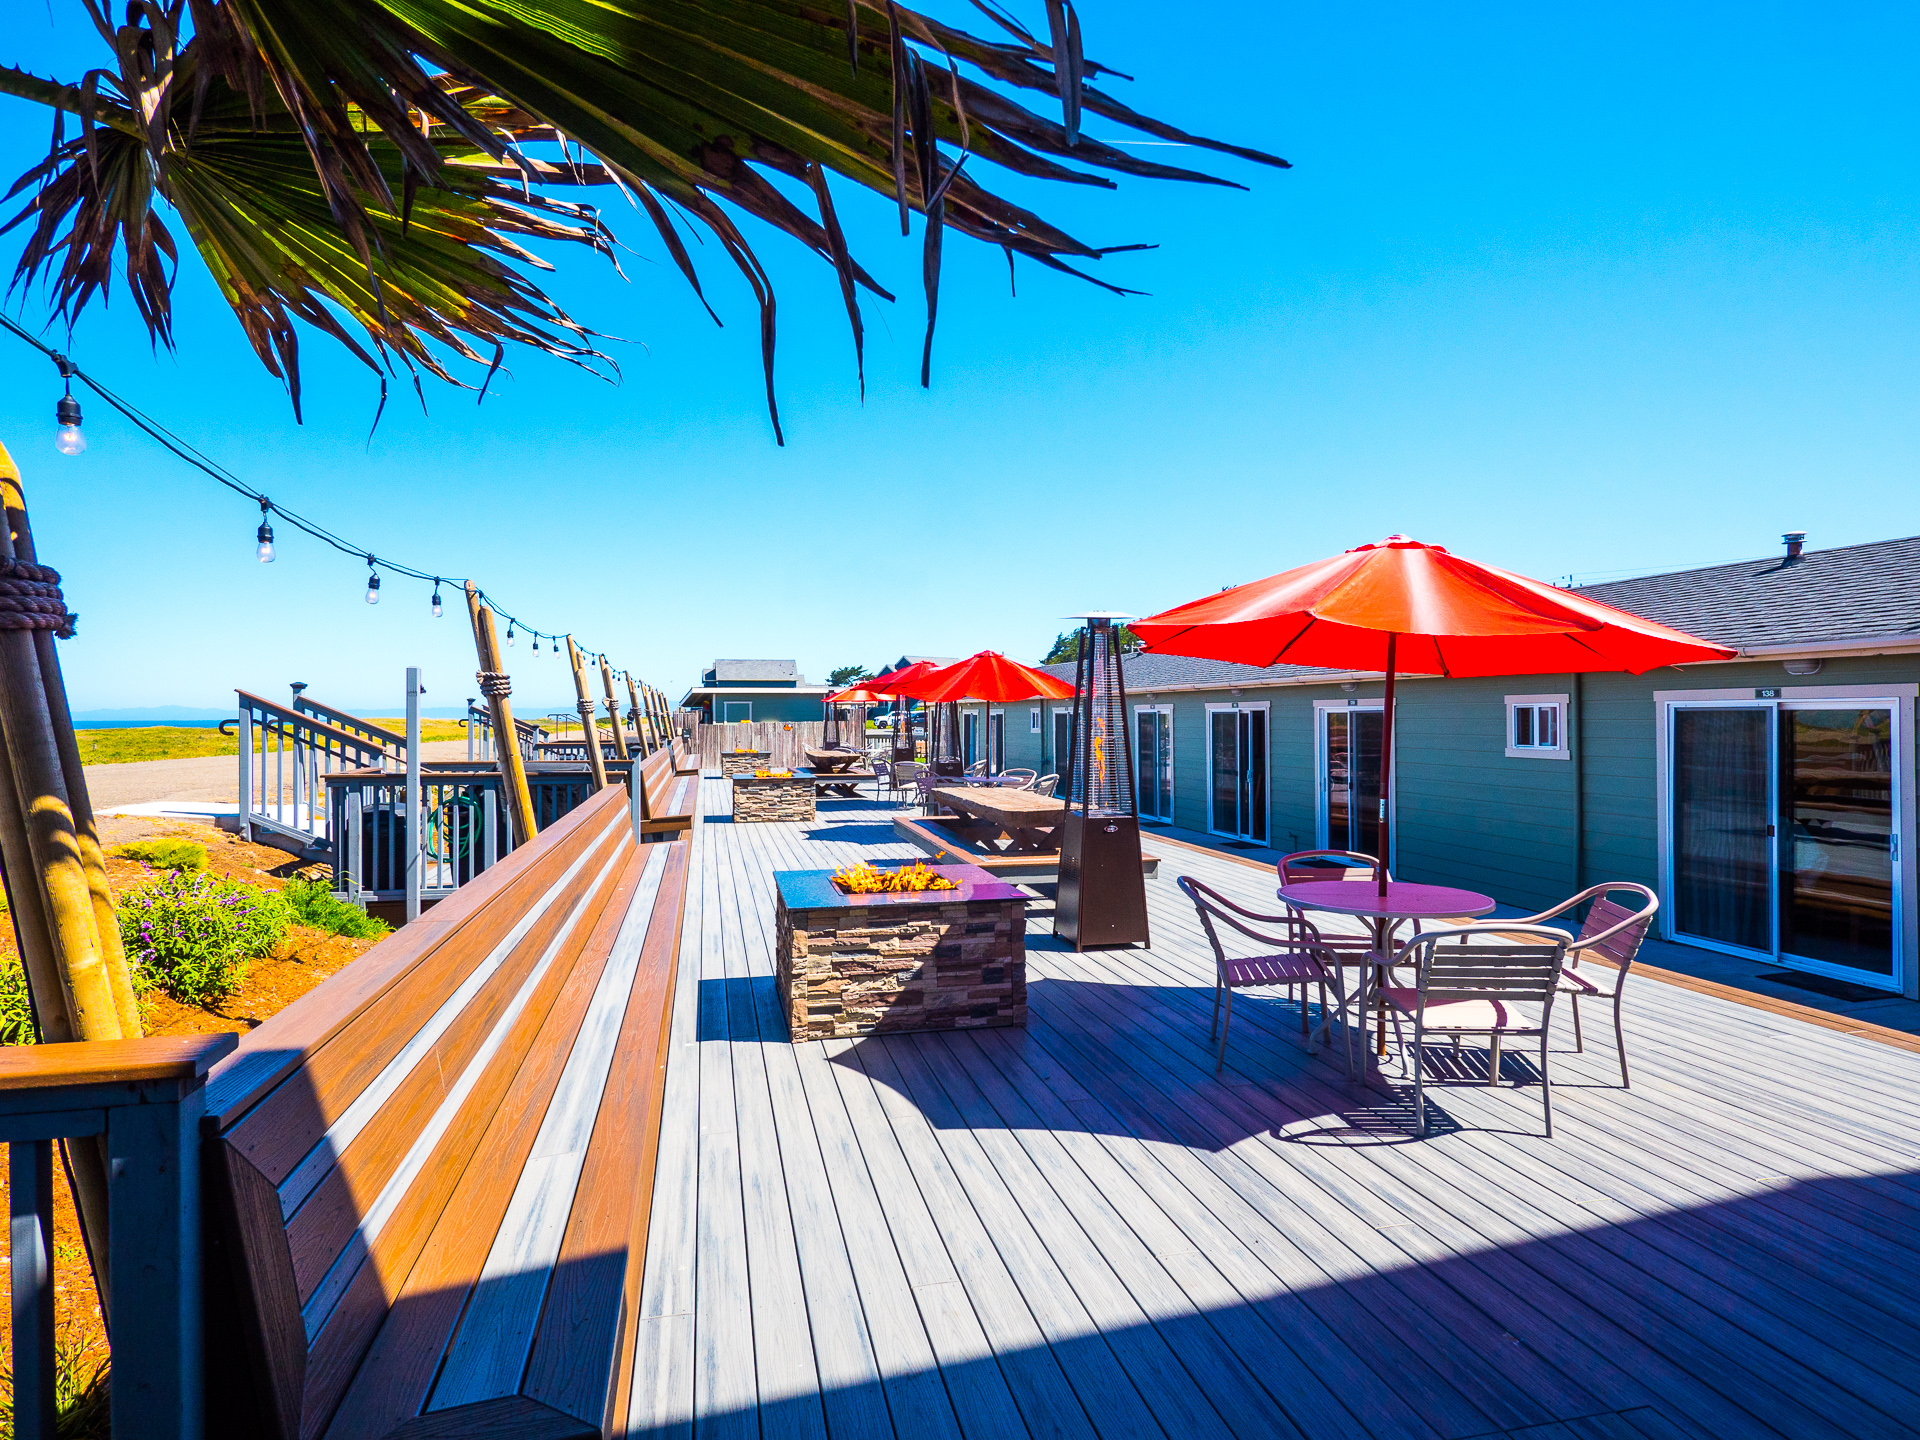 Come relax and unwind at The Mates Deck!